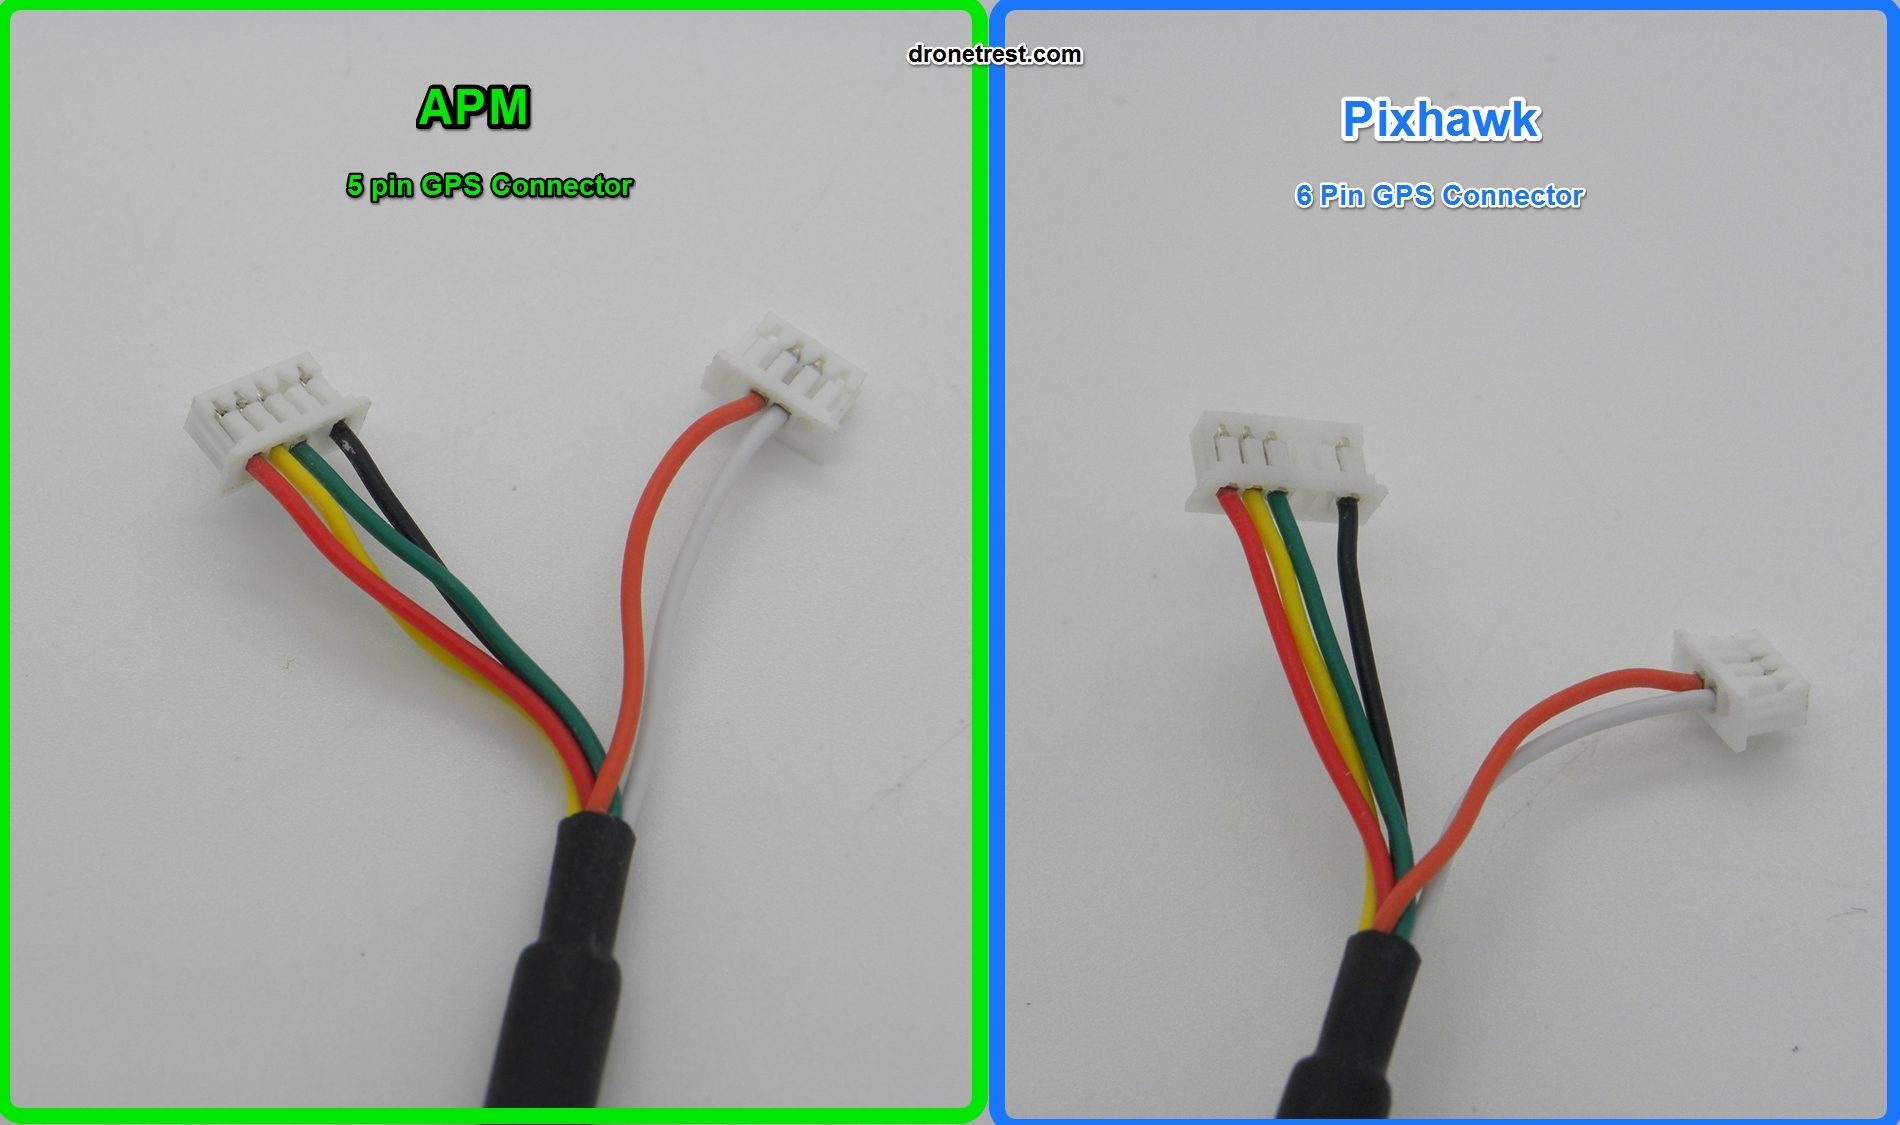 Swapping NEO7NNEOM8N    GPS    connector for PixhawkAPM  Guides  DroneTrest